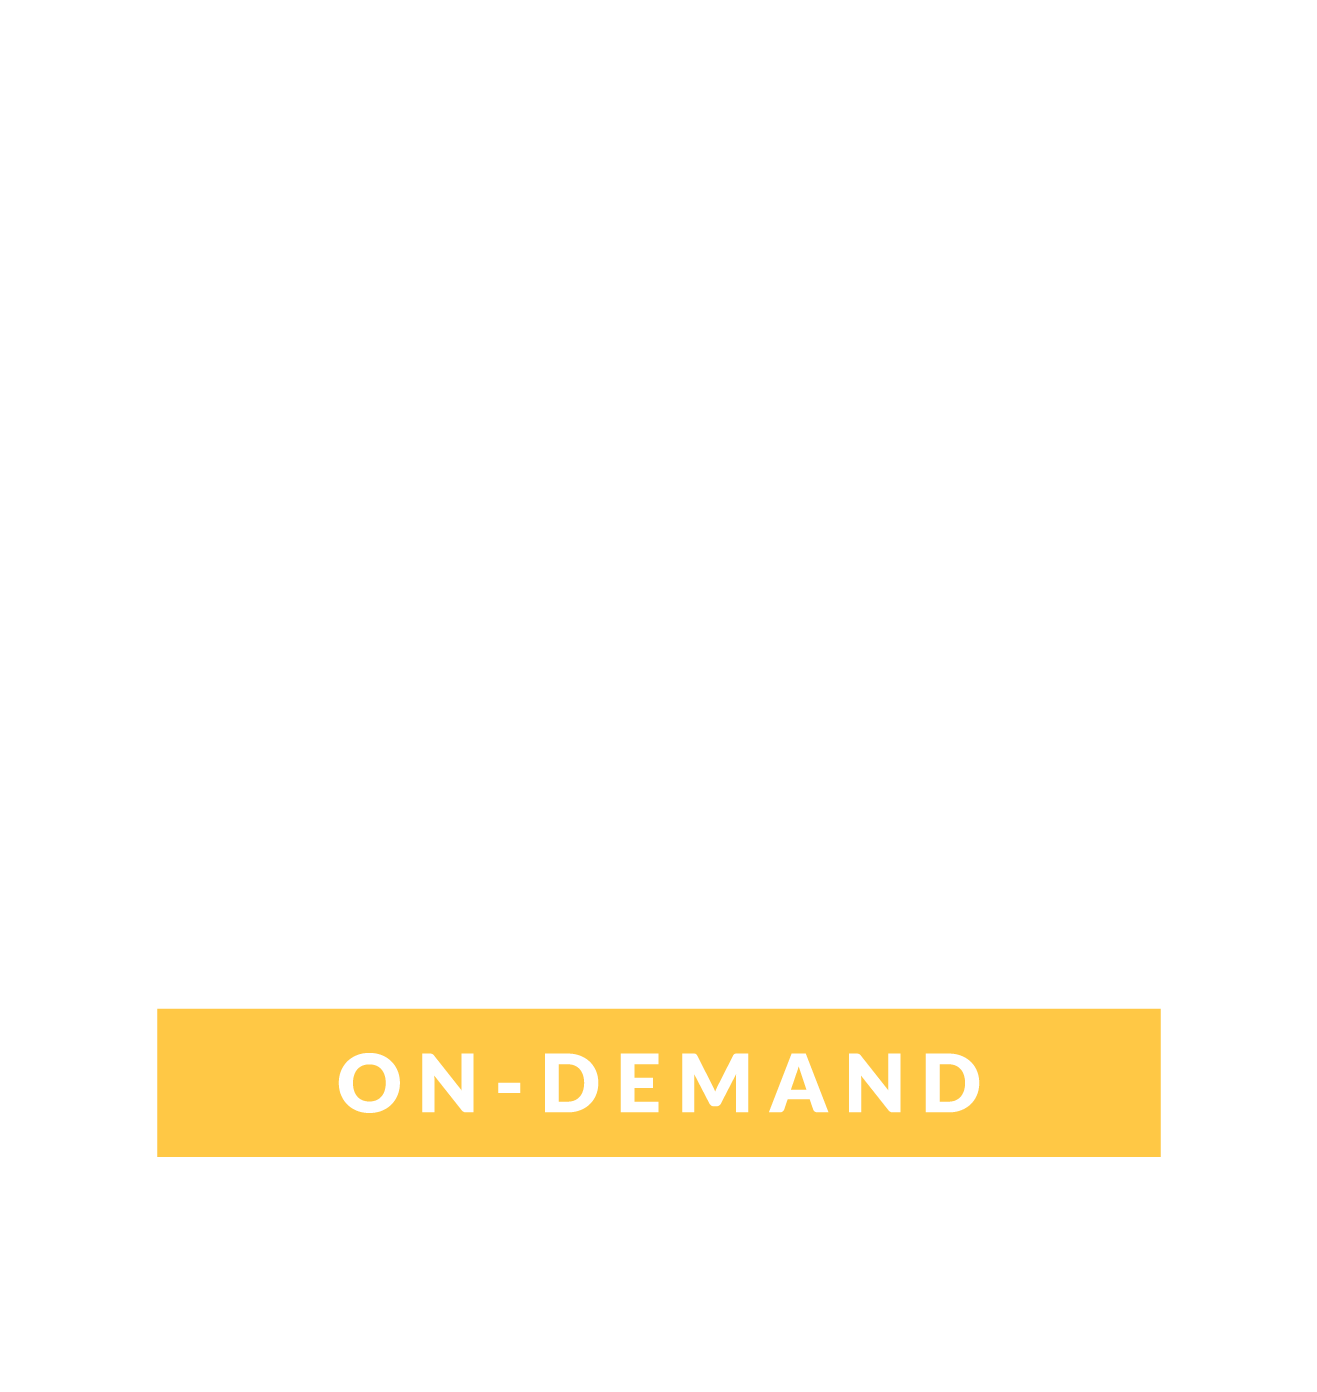 The Content Planner Workshop On-Demand